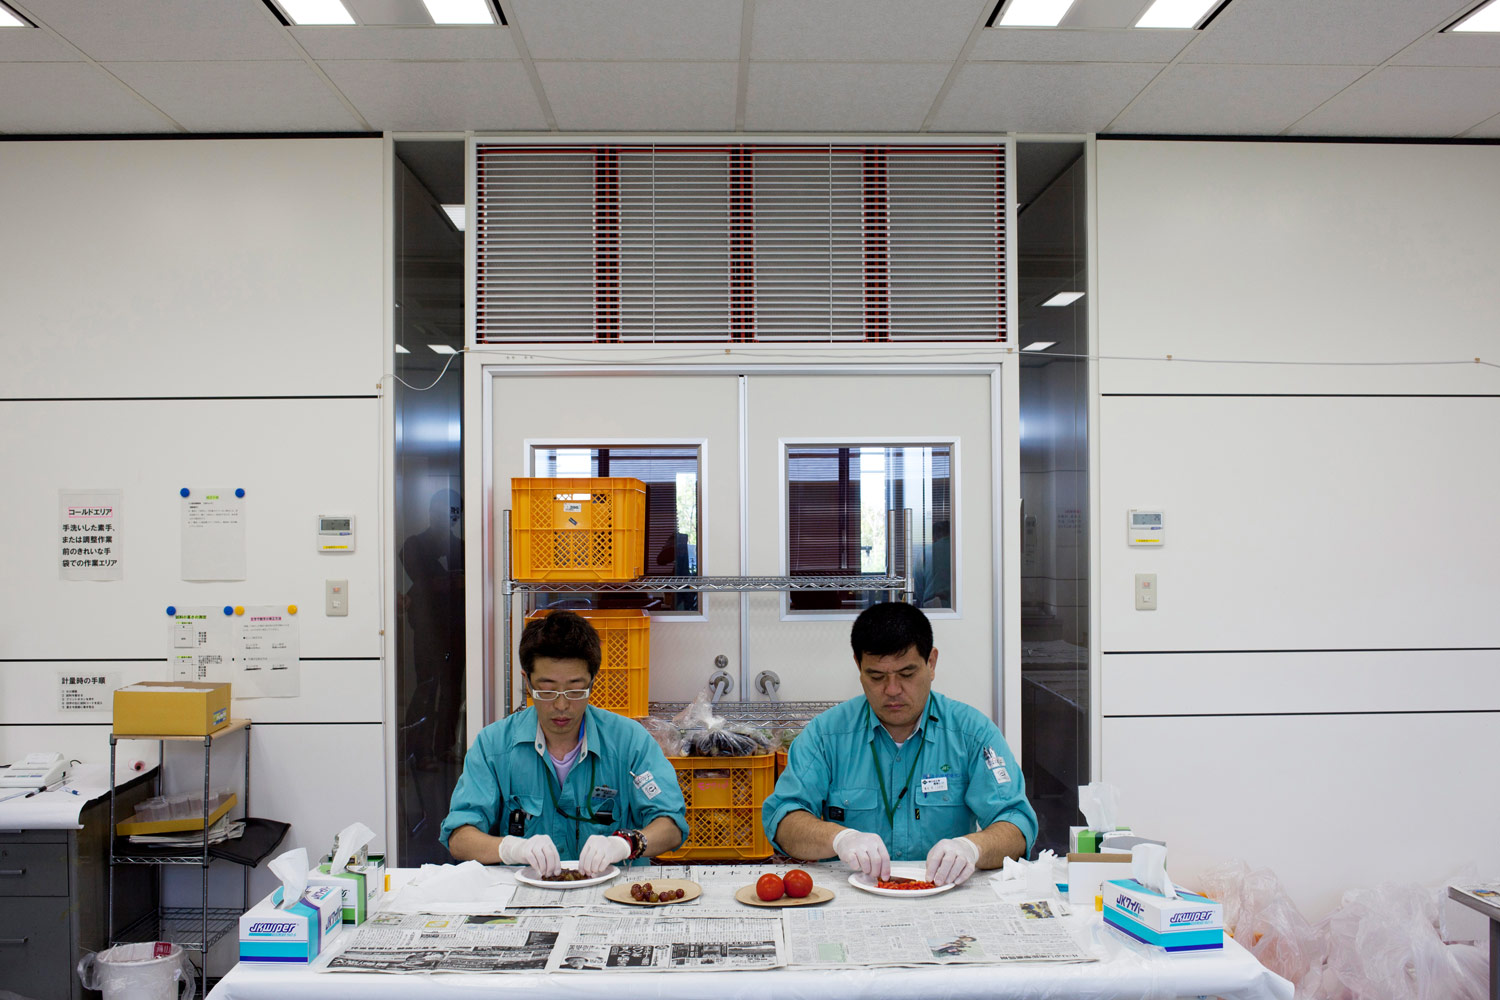 Fruit and vegetables are screened for radiation at a testing center in Koriyama city, August 11, 2011.